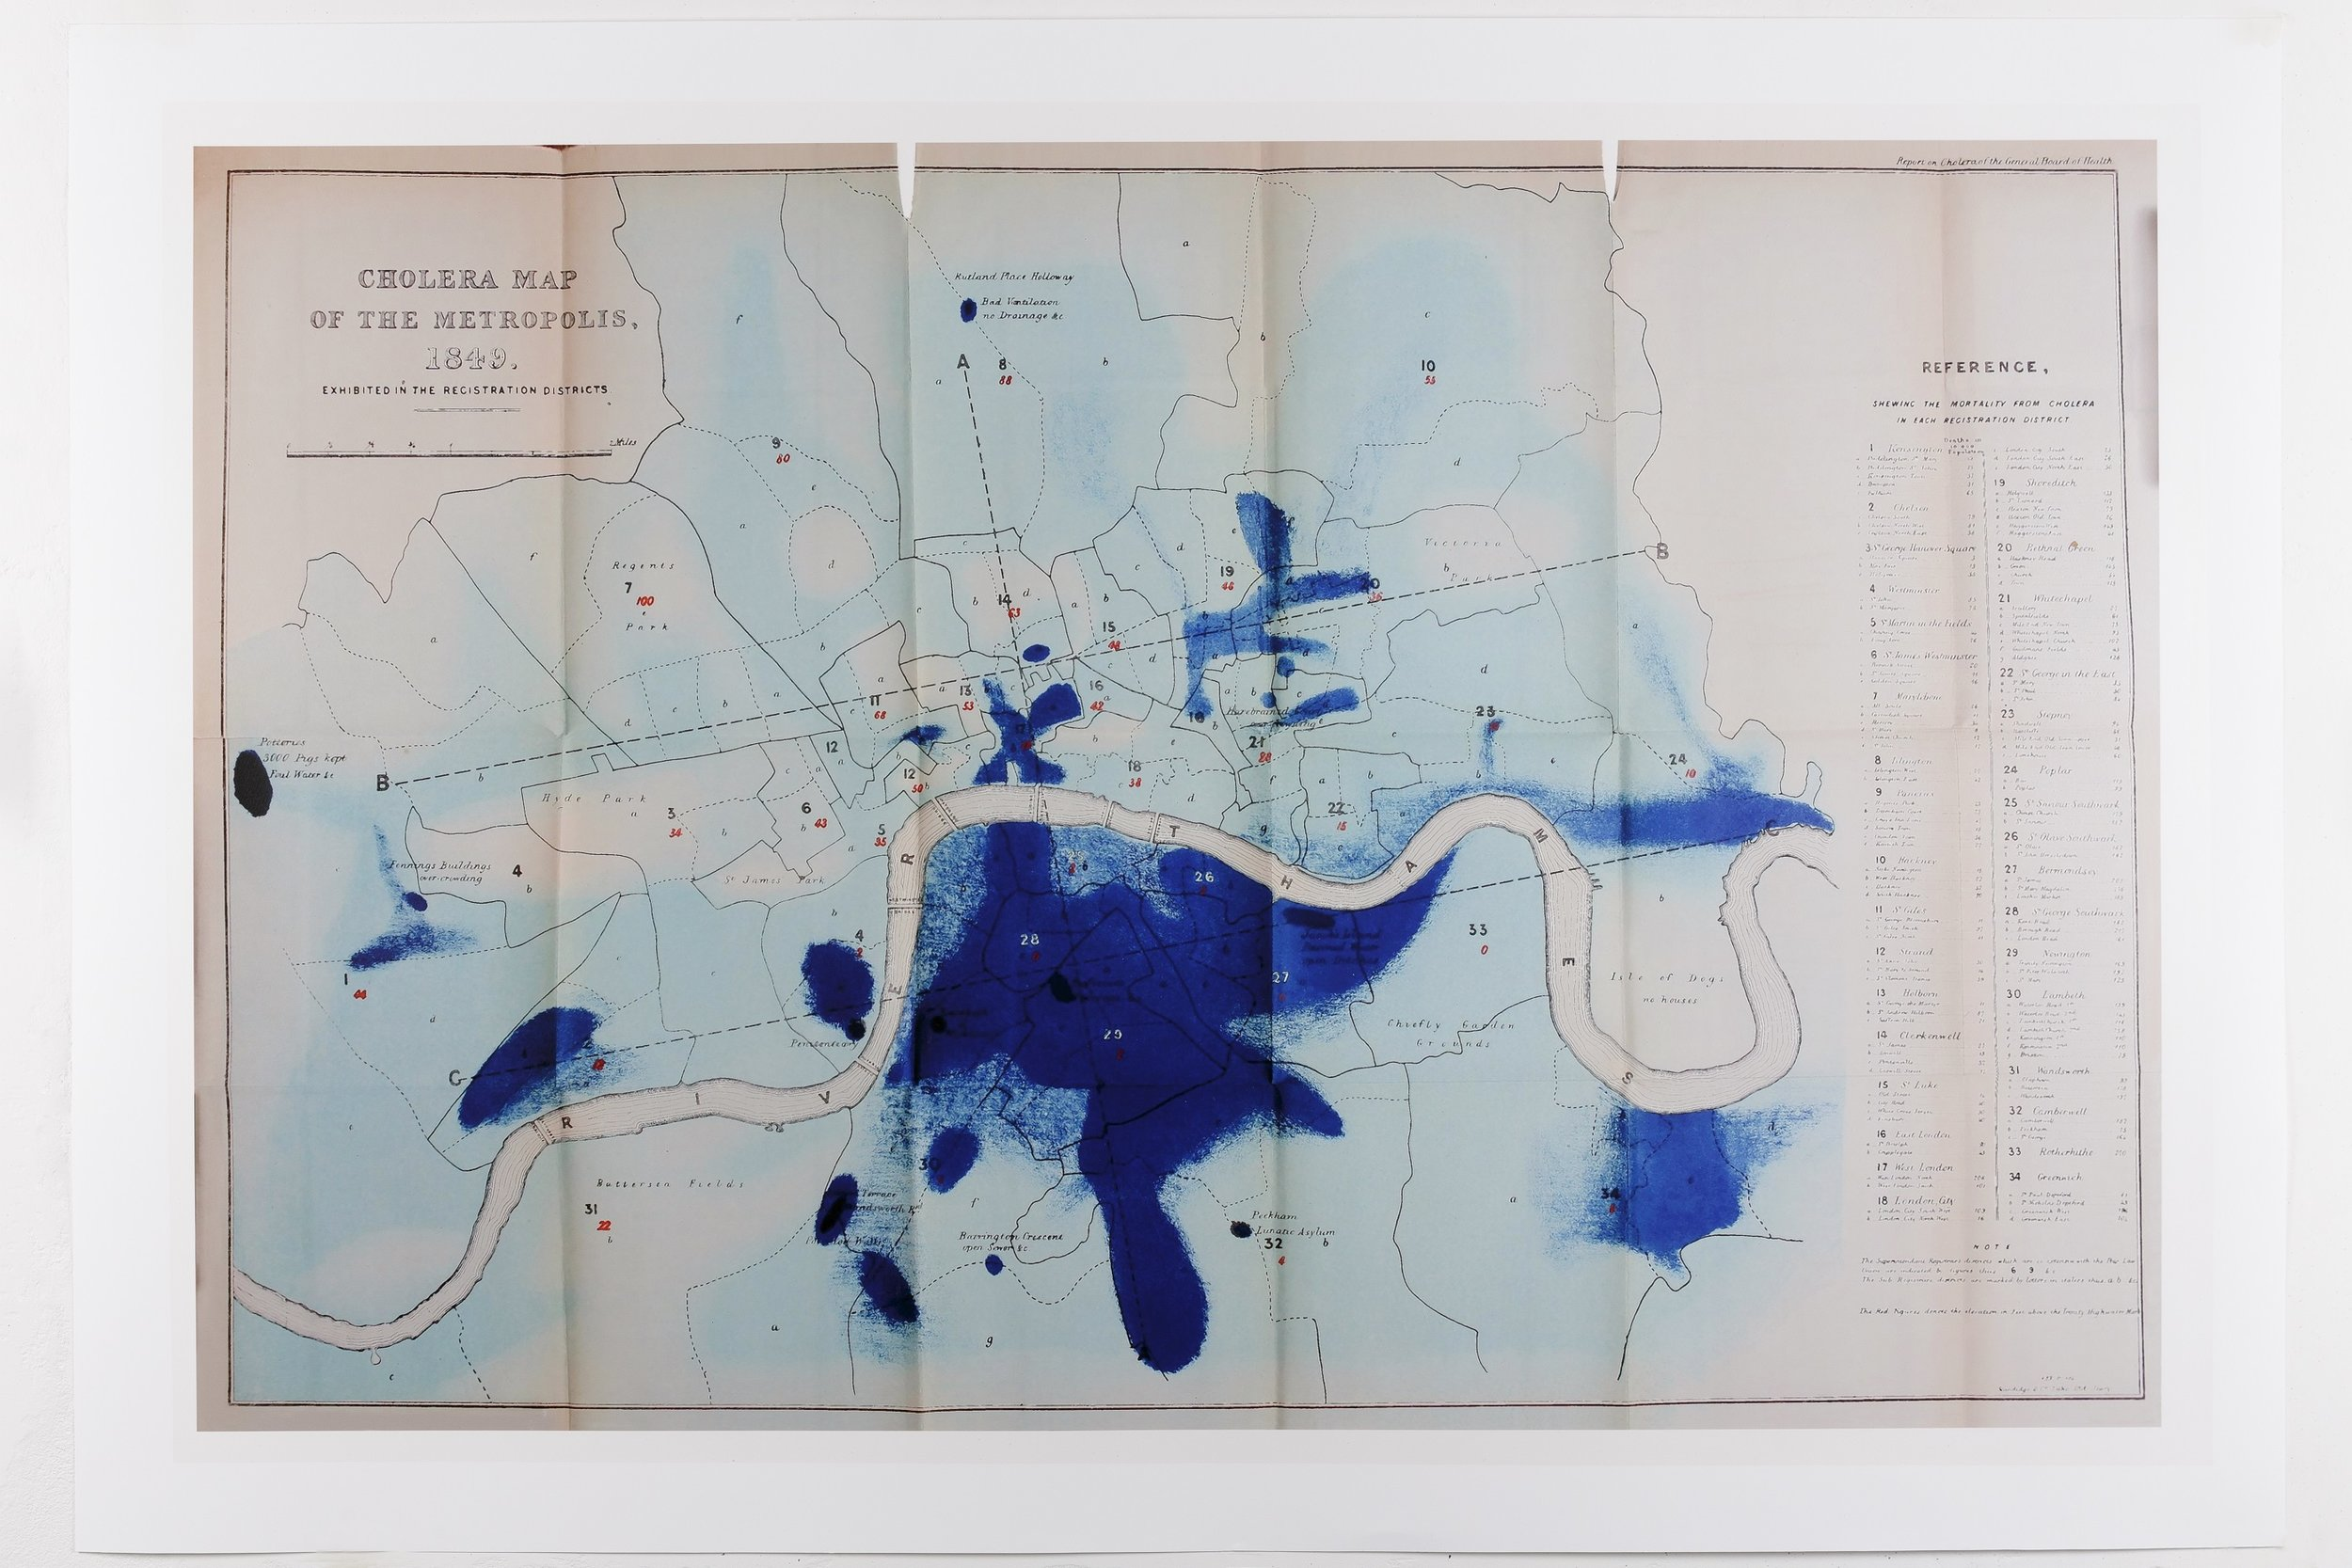 Cholera map of the metropolis of London. 1849. Installation of By the Deep, By the Mark, Somerset House. Photo: Tim Bowditch. Courtesy of the artist.